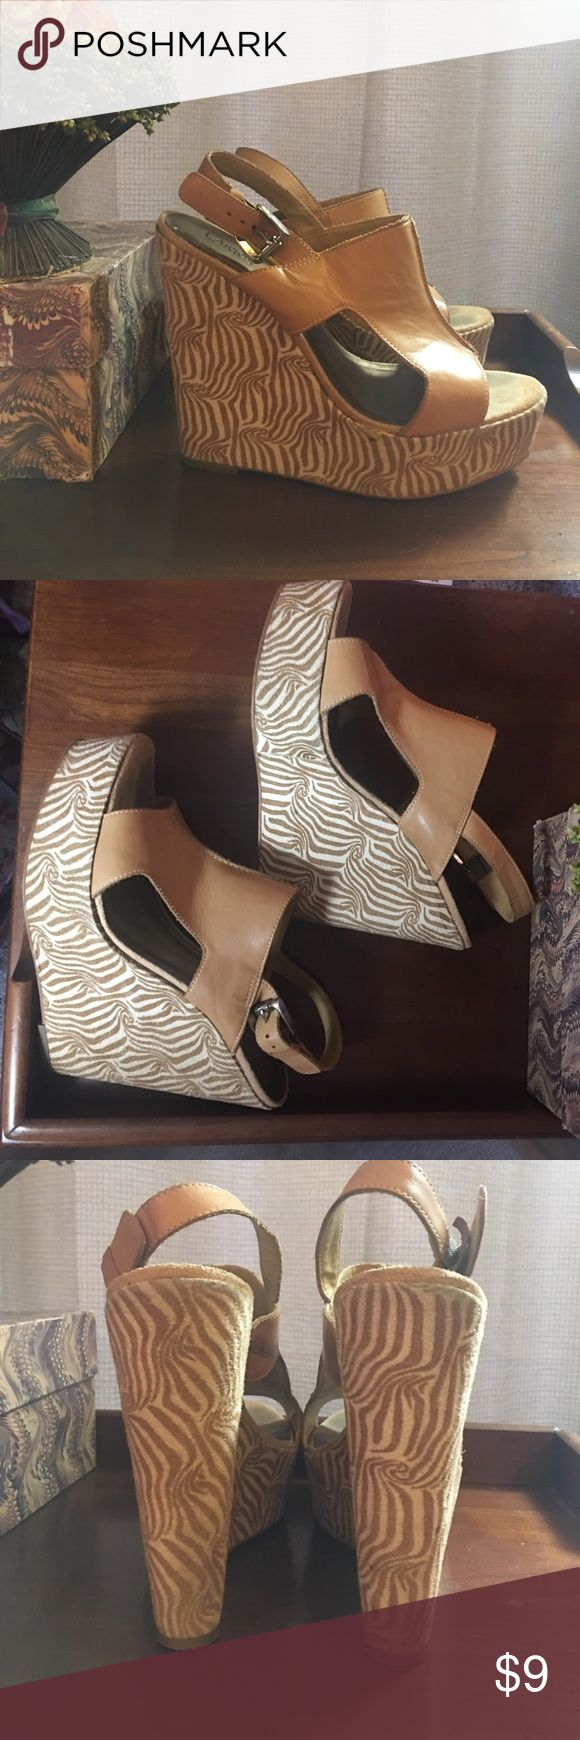 """Carlos Santana beige & cream  wedge platforms Carlos Santana beige & cream  wedge platforms. EUC. Wear is shown in pics and reflected in price. Leather upper and suede bottom. Way cute!!!!! Heels 6"""" high but not hard to walk in I promise. Remember to bundle and save 20% Carlos Santana Shoes Platforms"""